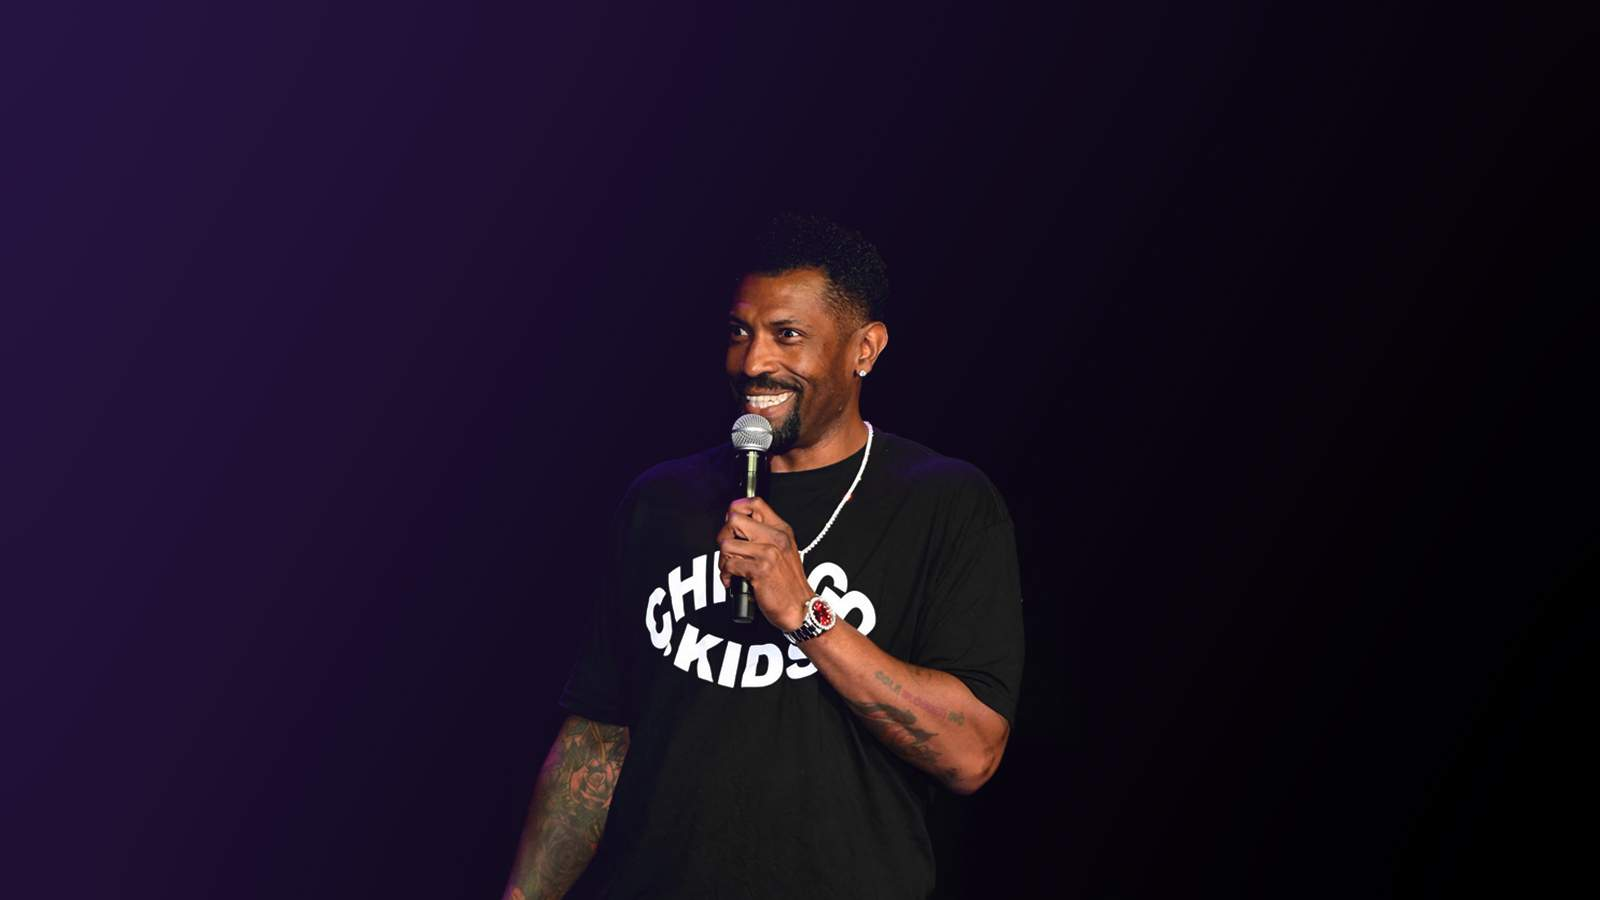 Deon Cole (Rescheduled from 5/16/2020, 1/9/2021)